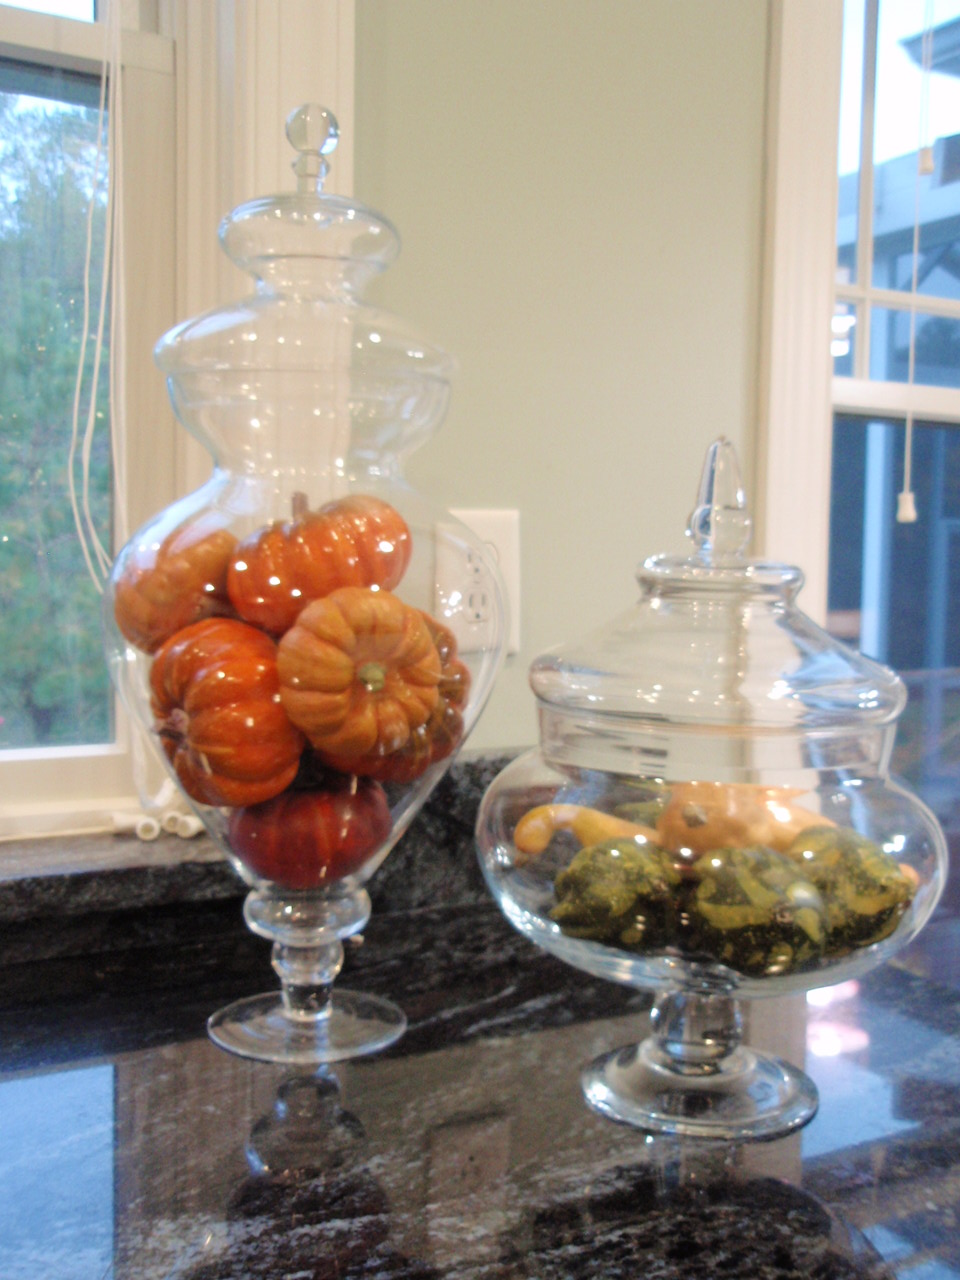 Modern vintage coastal happy thanksgiving welcome to my home they were on clearance at hobby lobby and were actually autumn picks used for floral arrangements i just pulled the metal pick out and used them as jar reviewsmspy